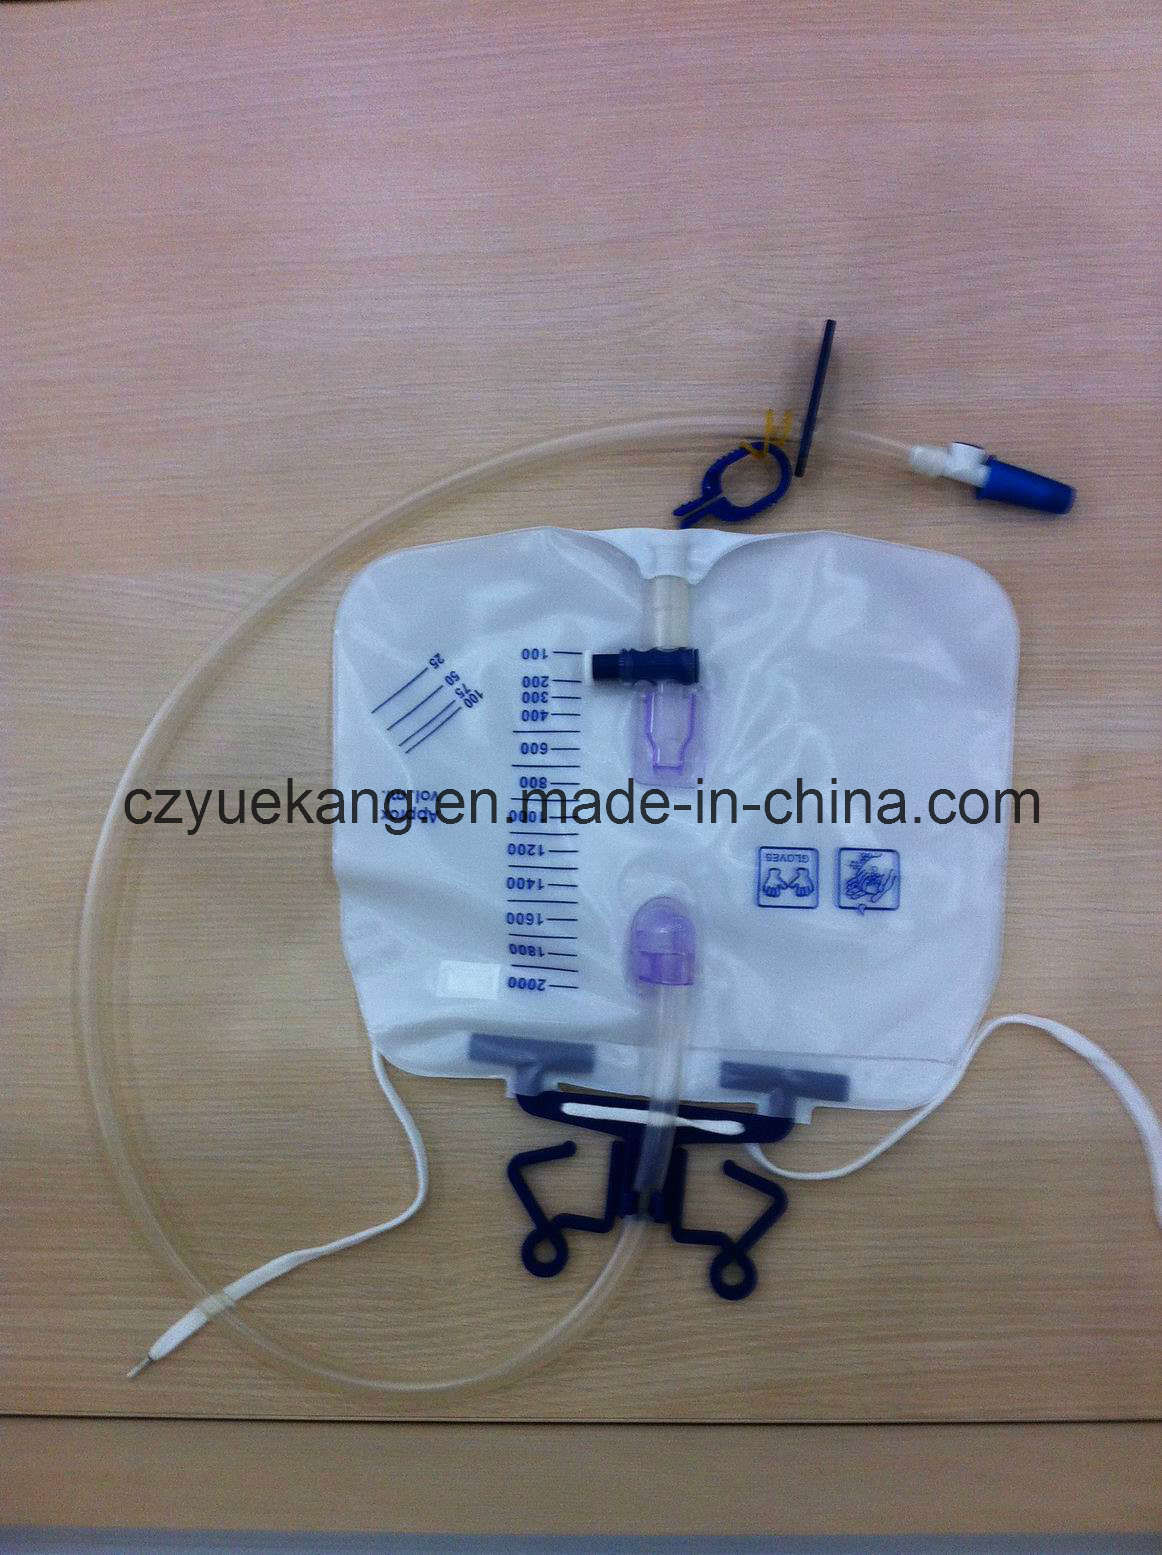 2000ml Luxury Drainage Urine Bag for Clinical